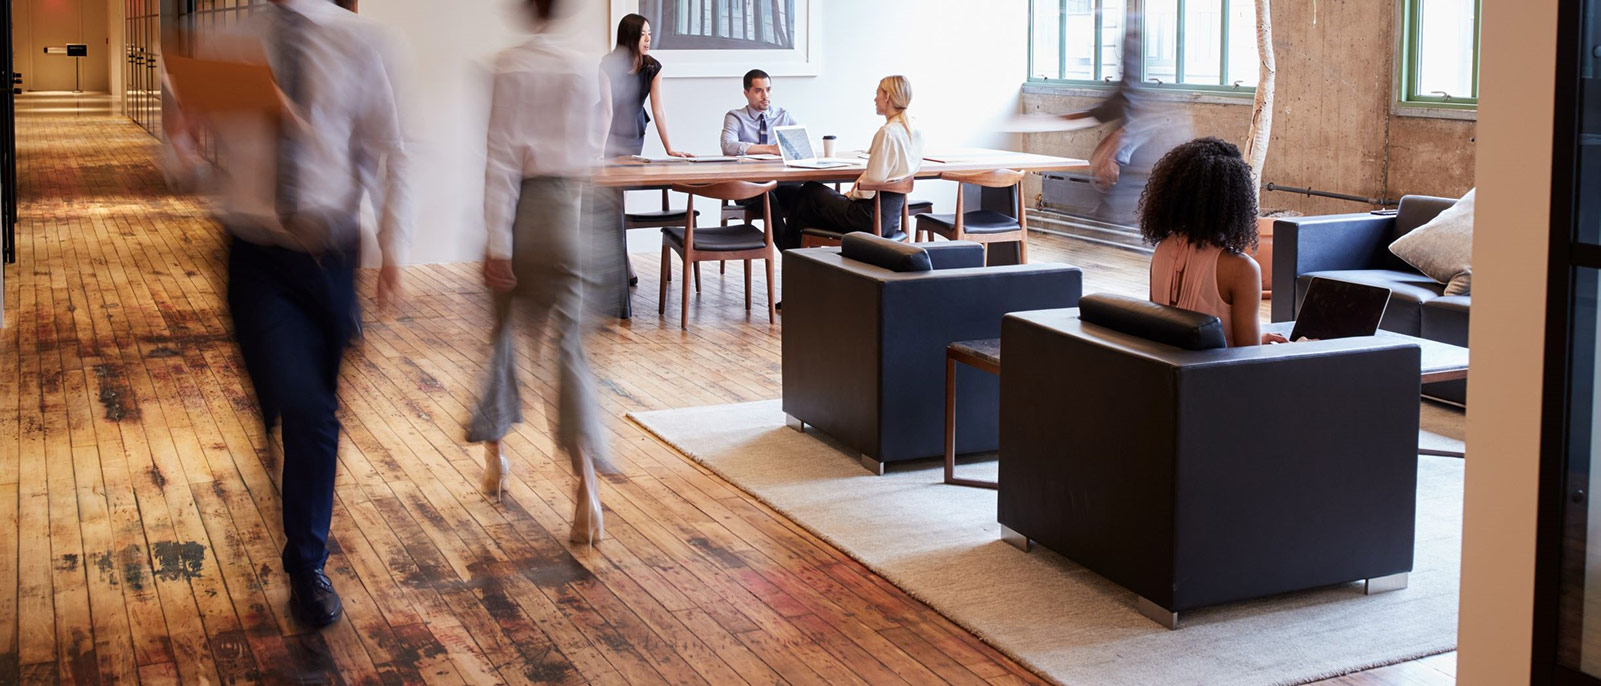 Two people walking through a busy open plan office space